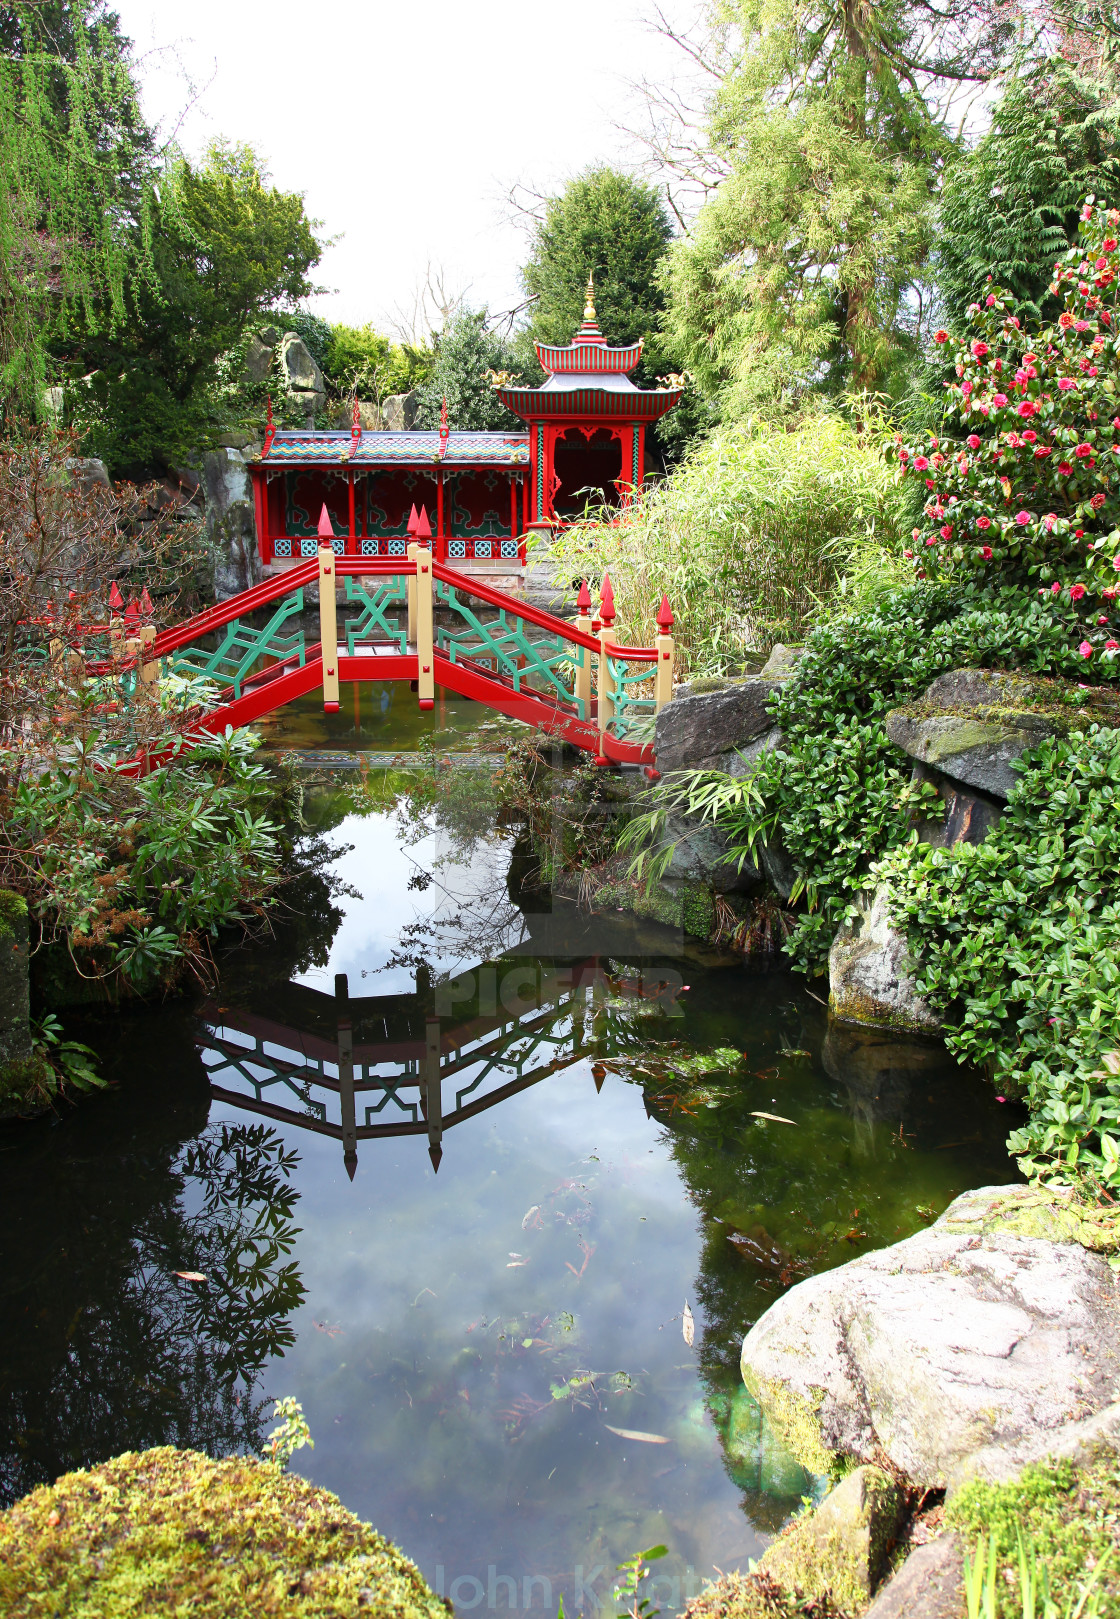 The Chinese Garden Bridge Pagoda And Lake At Biddulph Grange